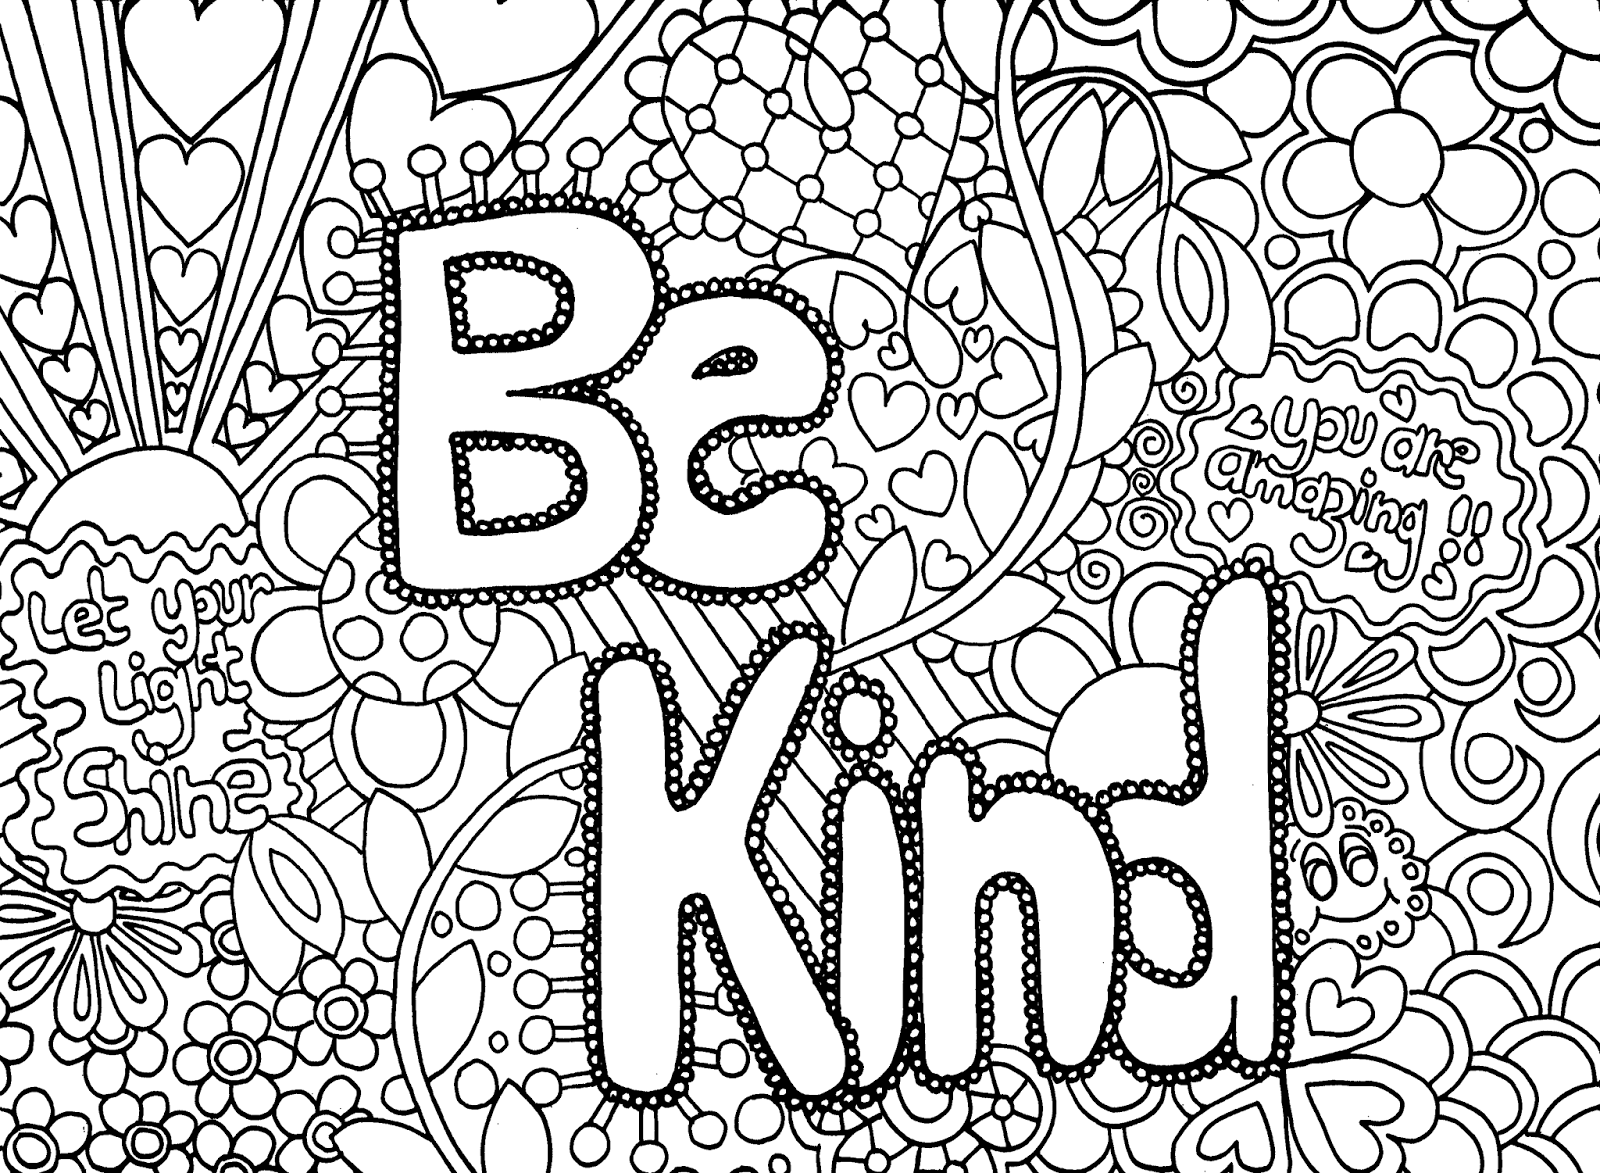 hard coloring pages for adults - Coloring Papges